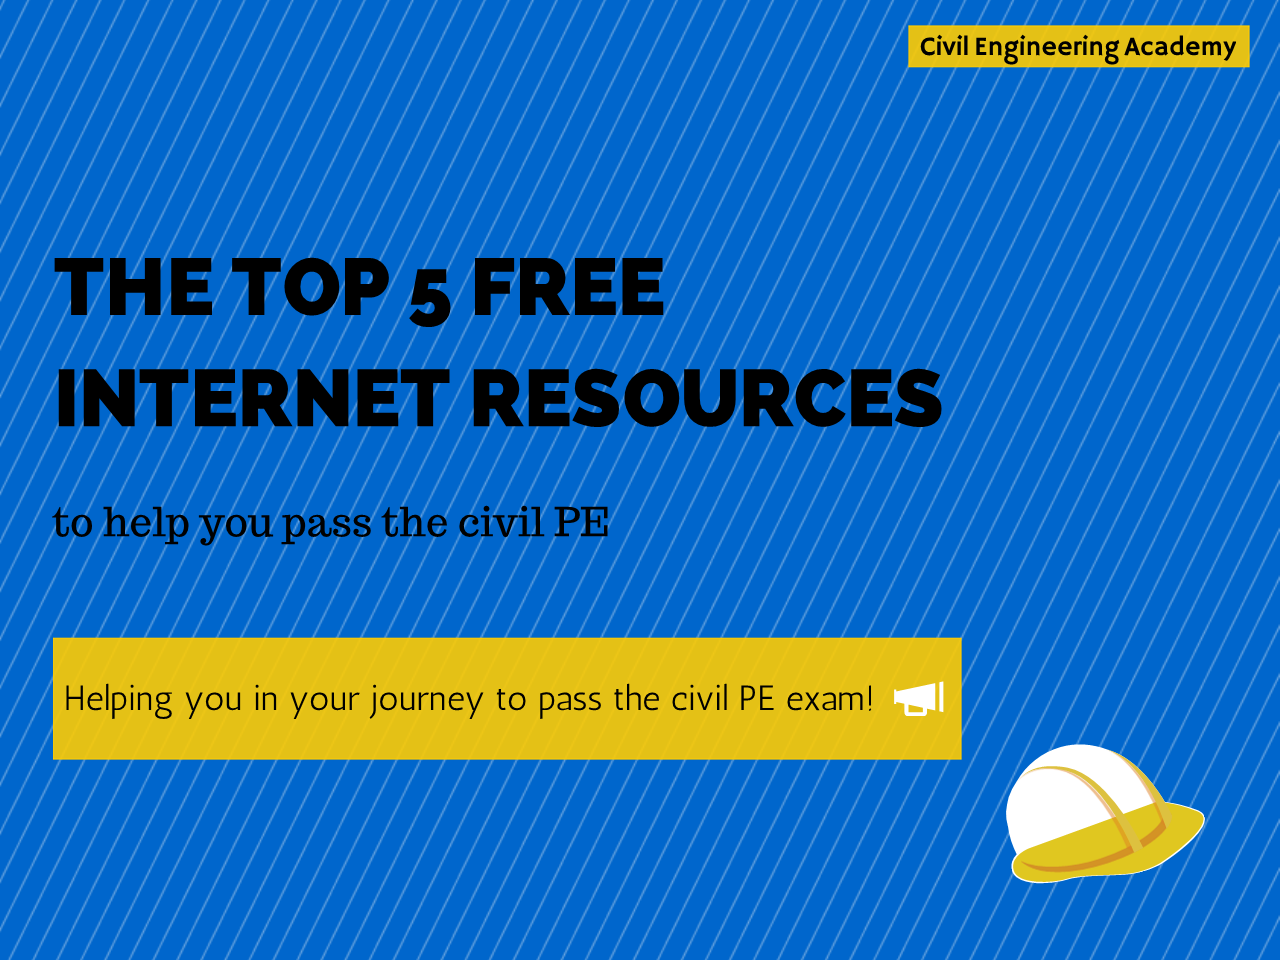 Top 5 Free Internet Resources for the PE